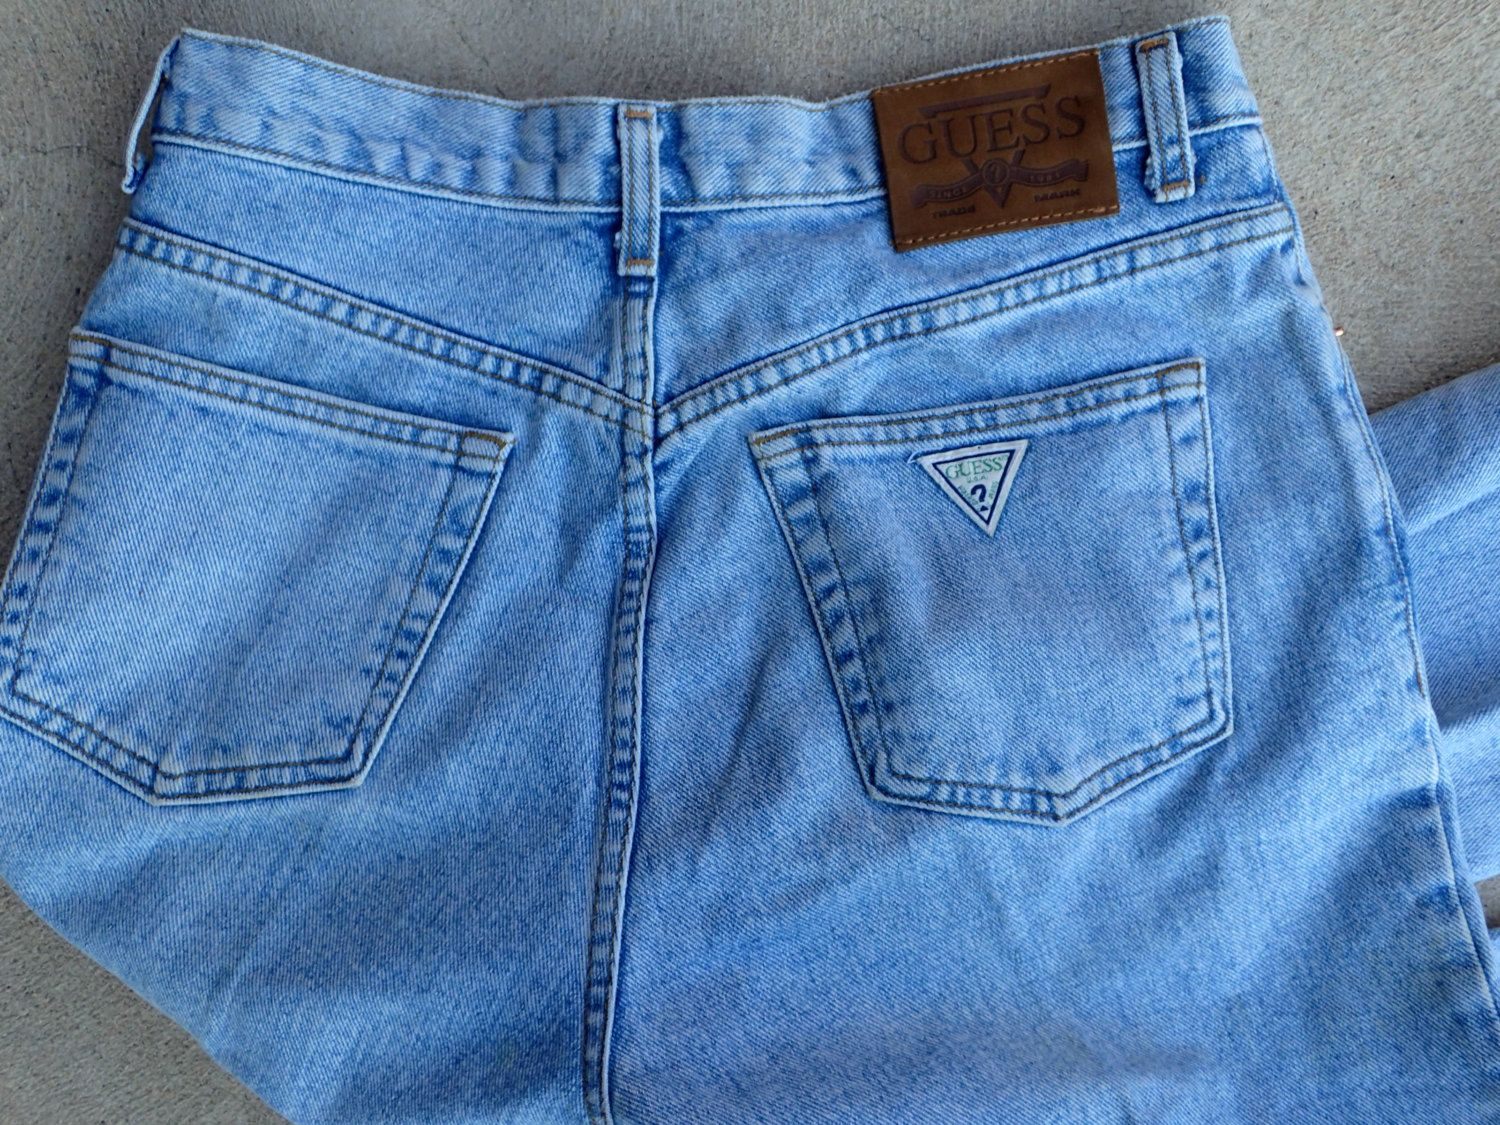 87bfcc9d2f90c Mens Vintage GUESS Jeans Classic Fit - Straight Leg - 32 x 34 - Cotton -  001 - Light Wash - Made in the U.S.A. by DOINGITSOBER on Etsy